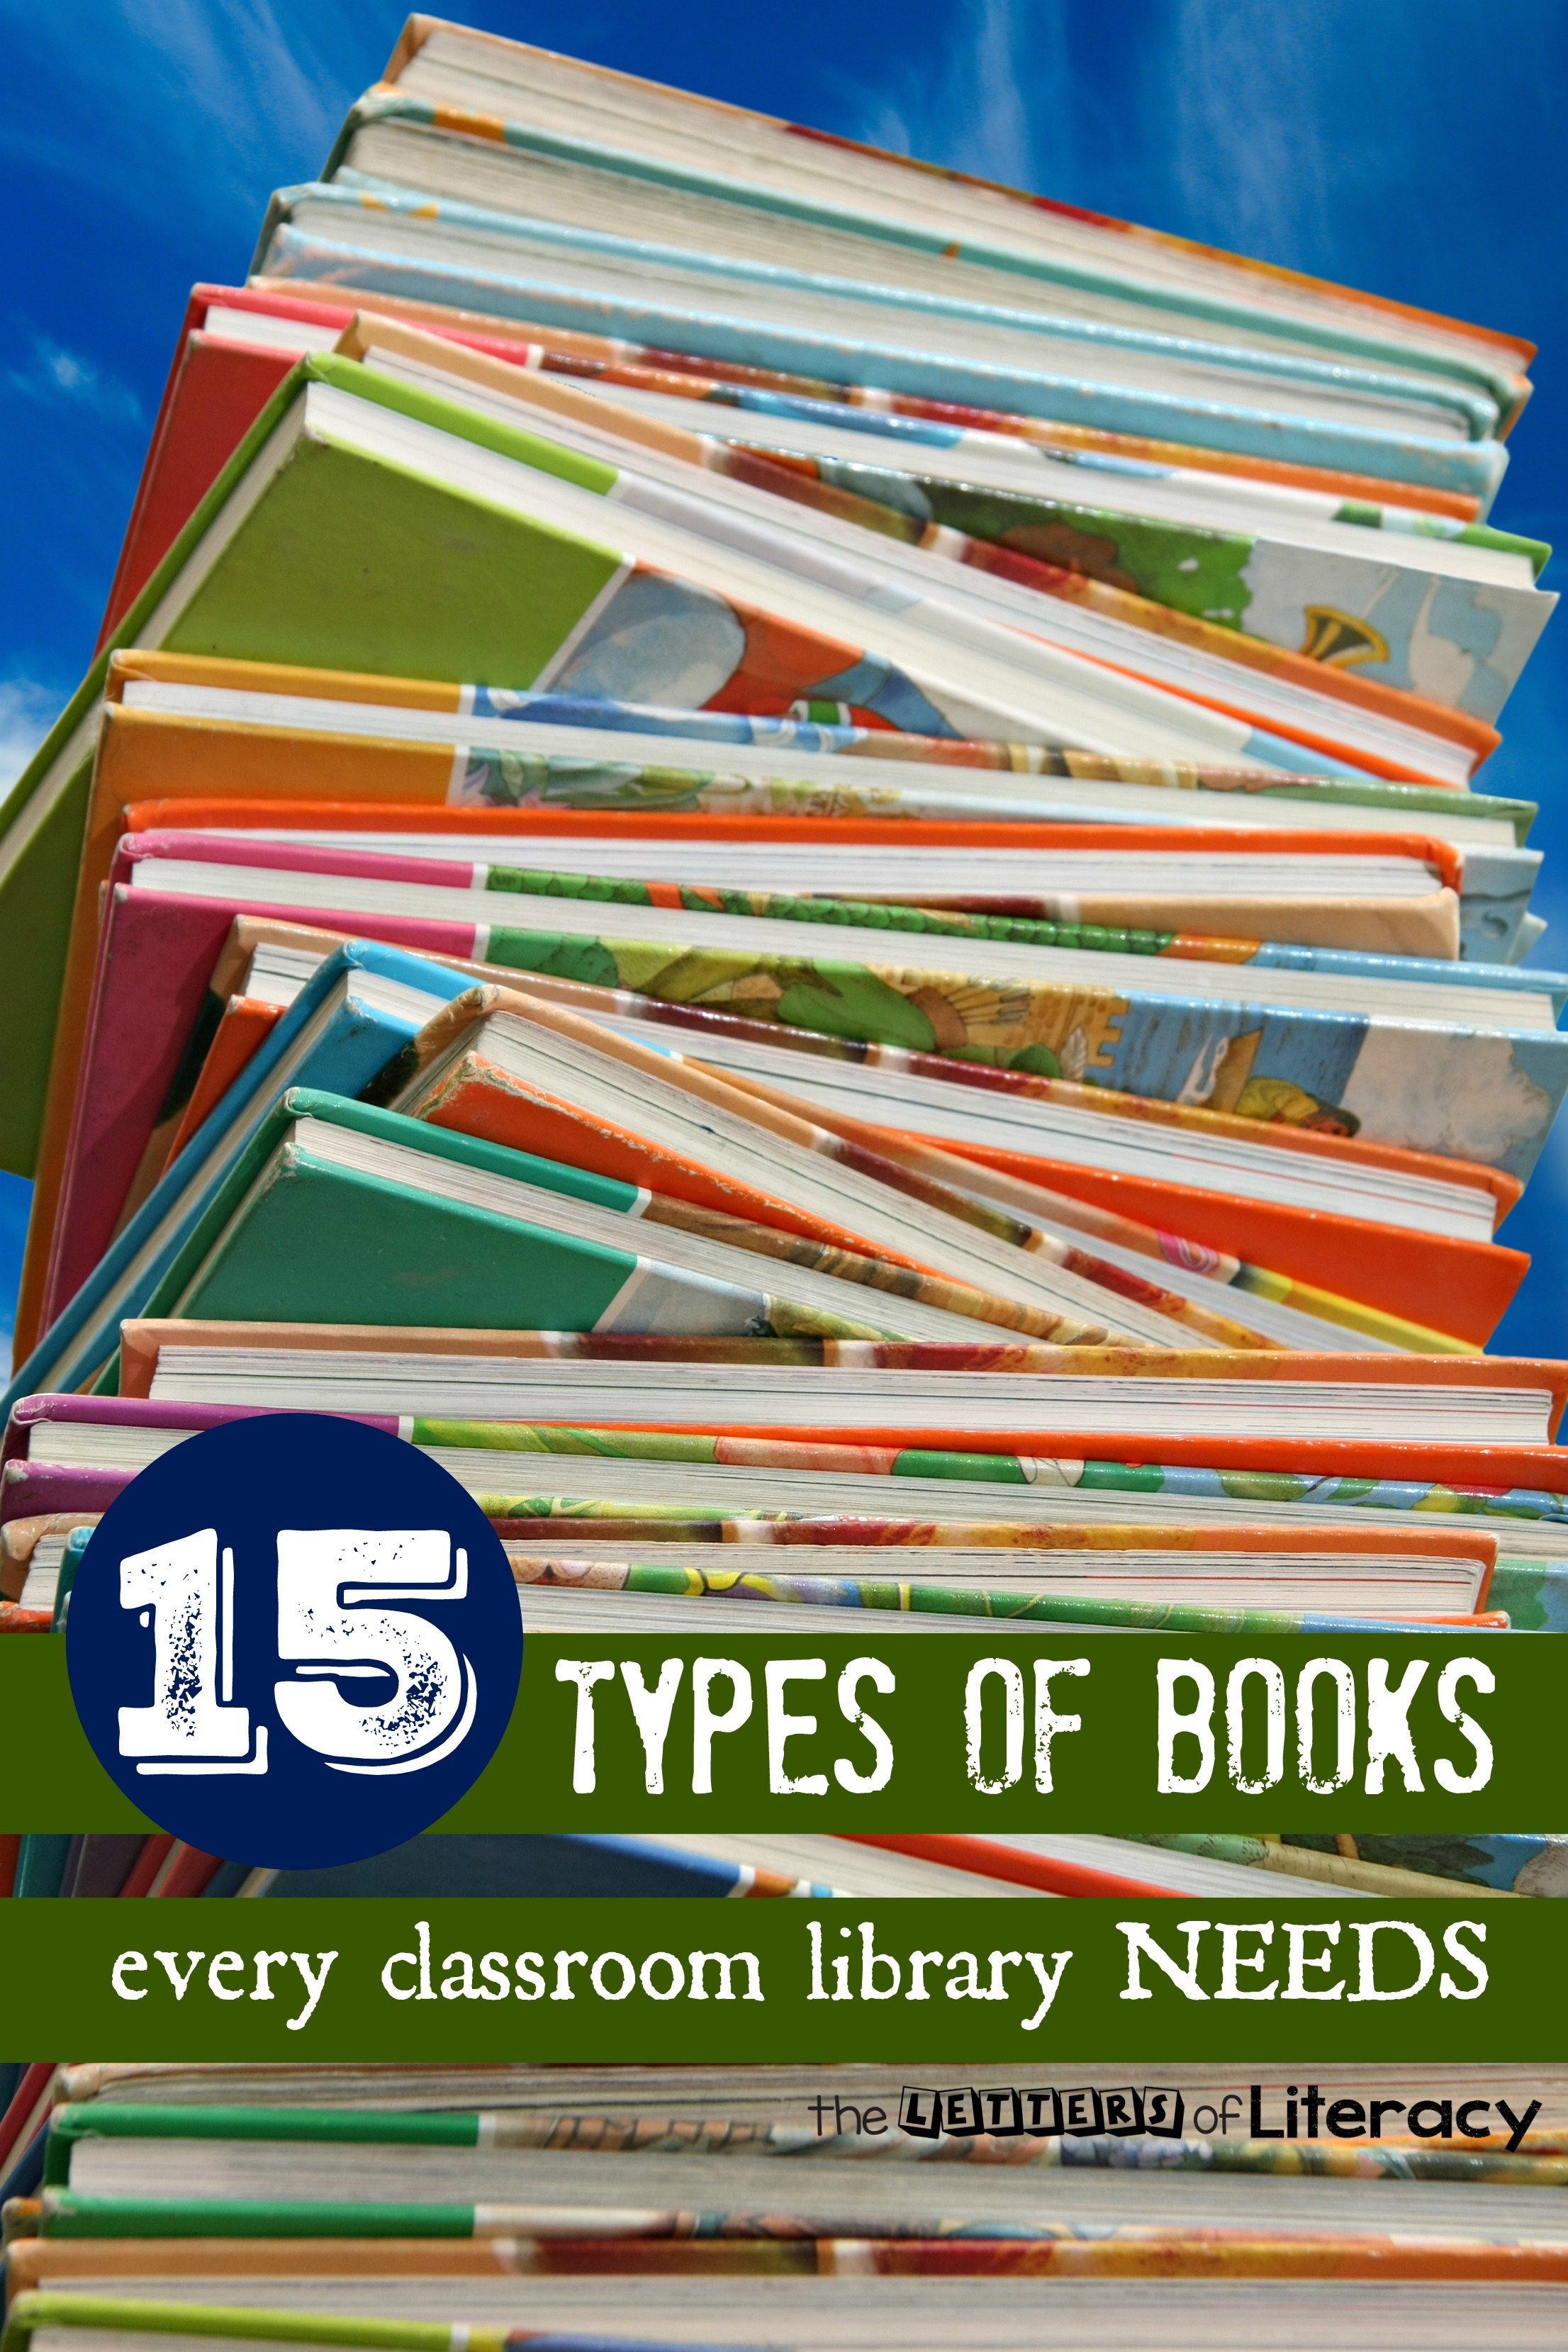 15 types of books every classroom library should have, and they're not what you think!